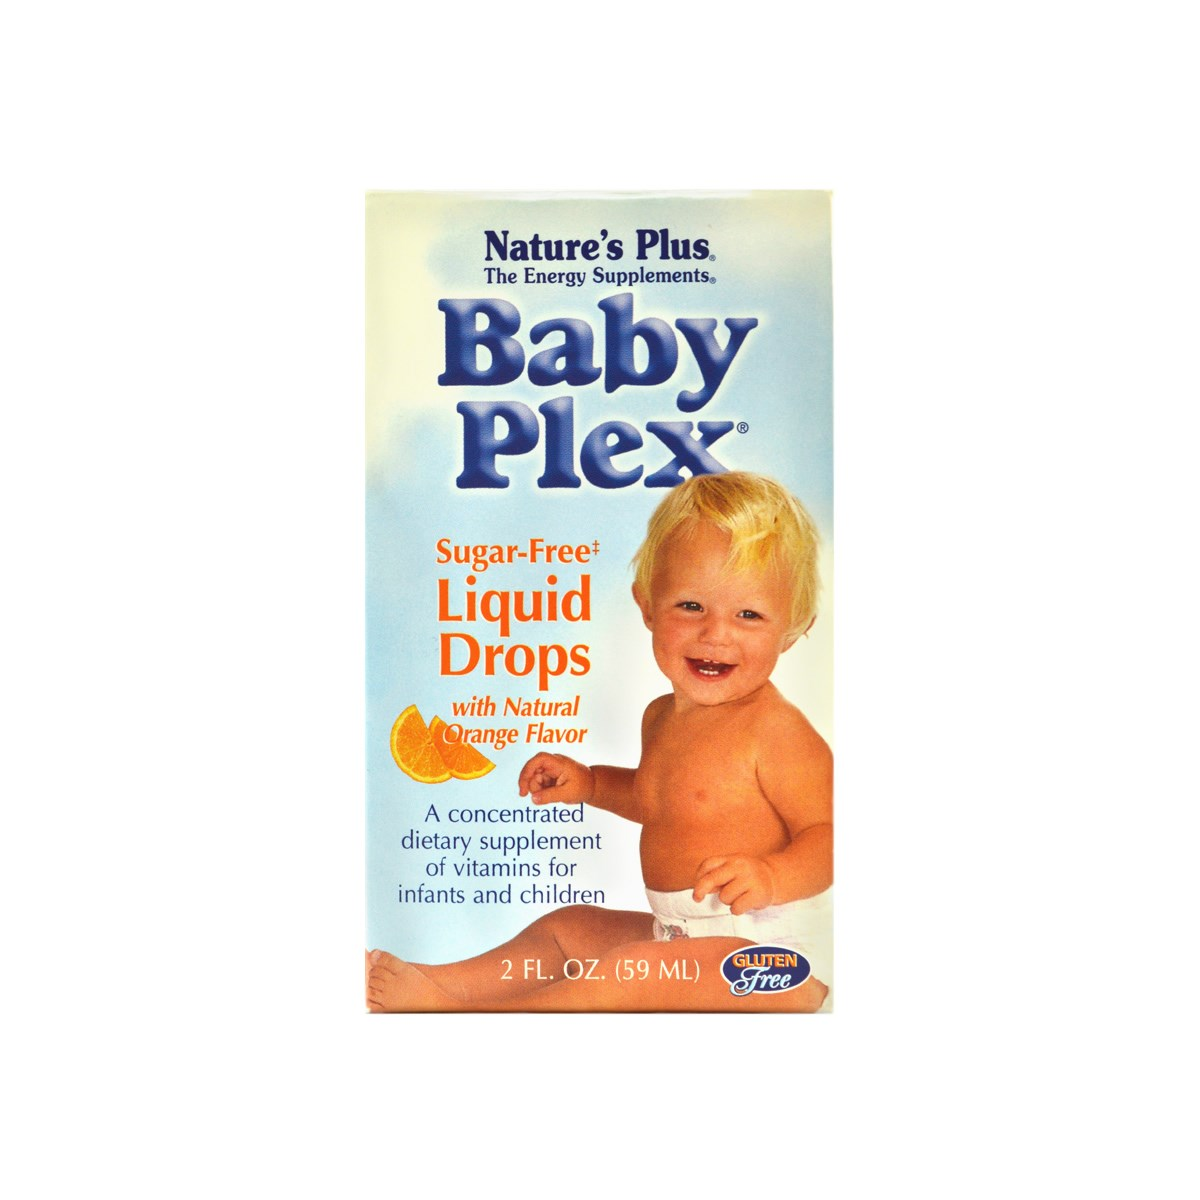 Natures Plus Baby Plex Sugar-Free Liquid Drops